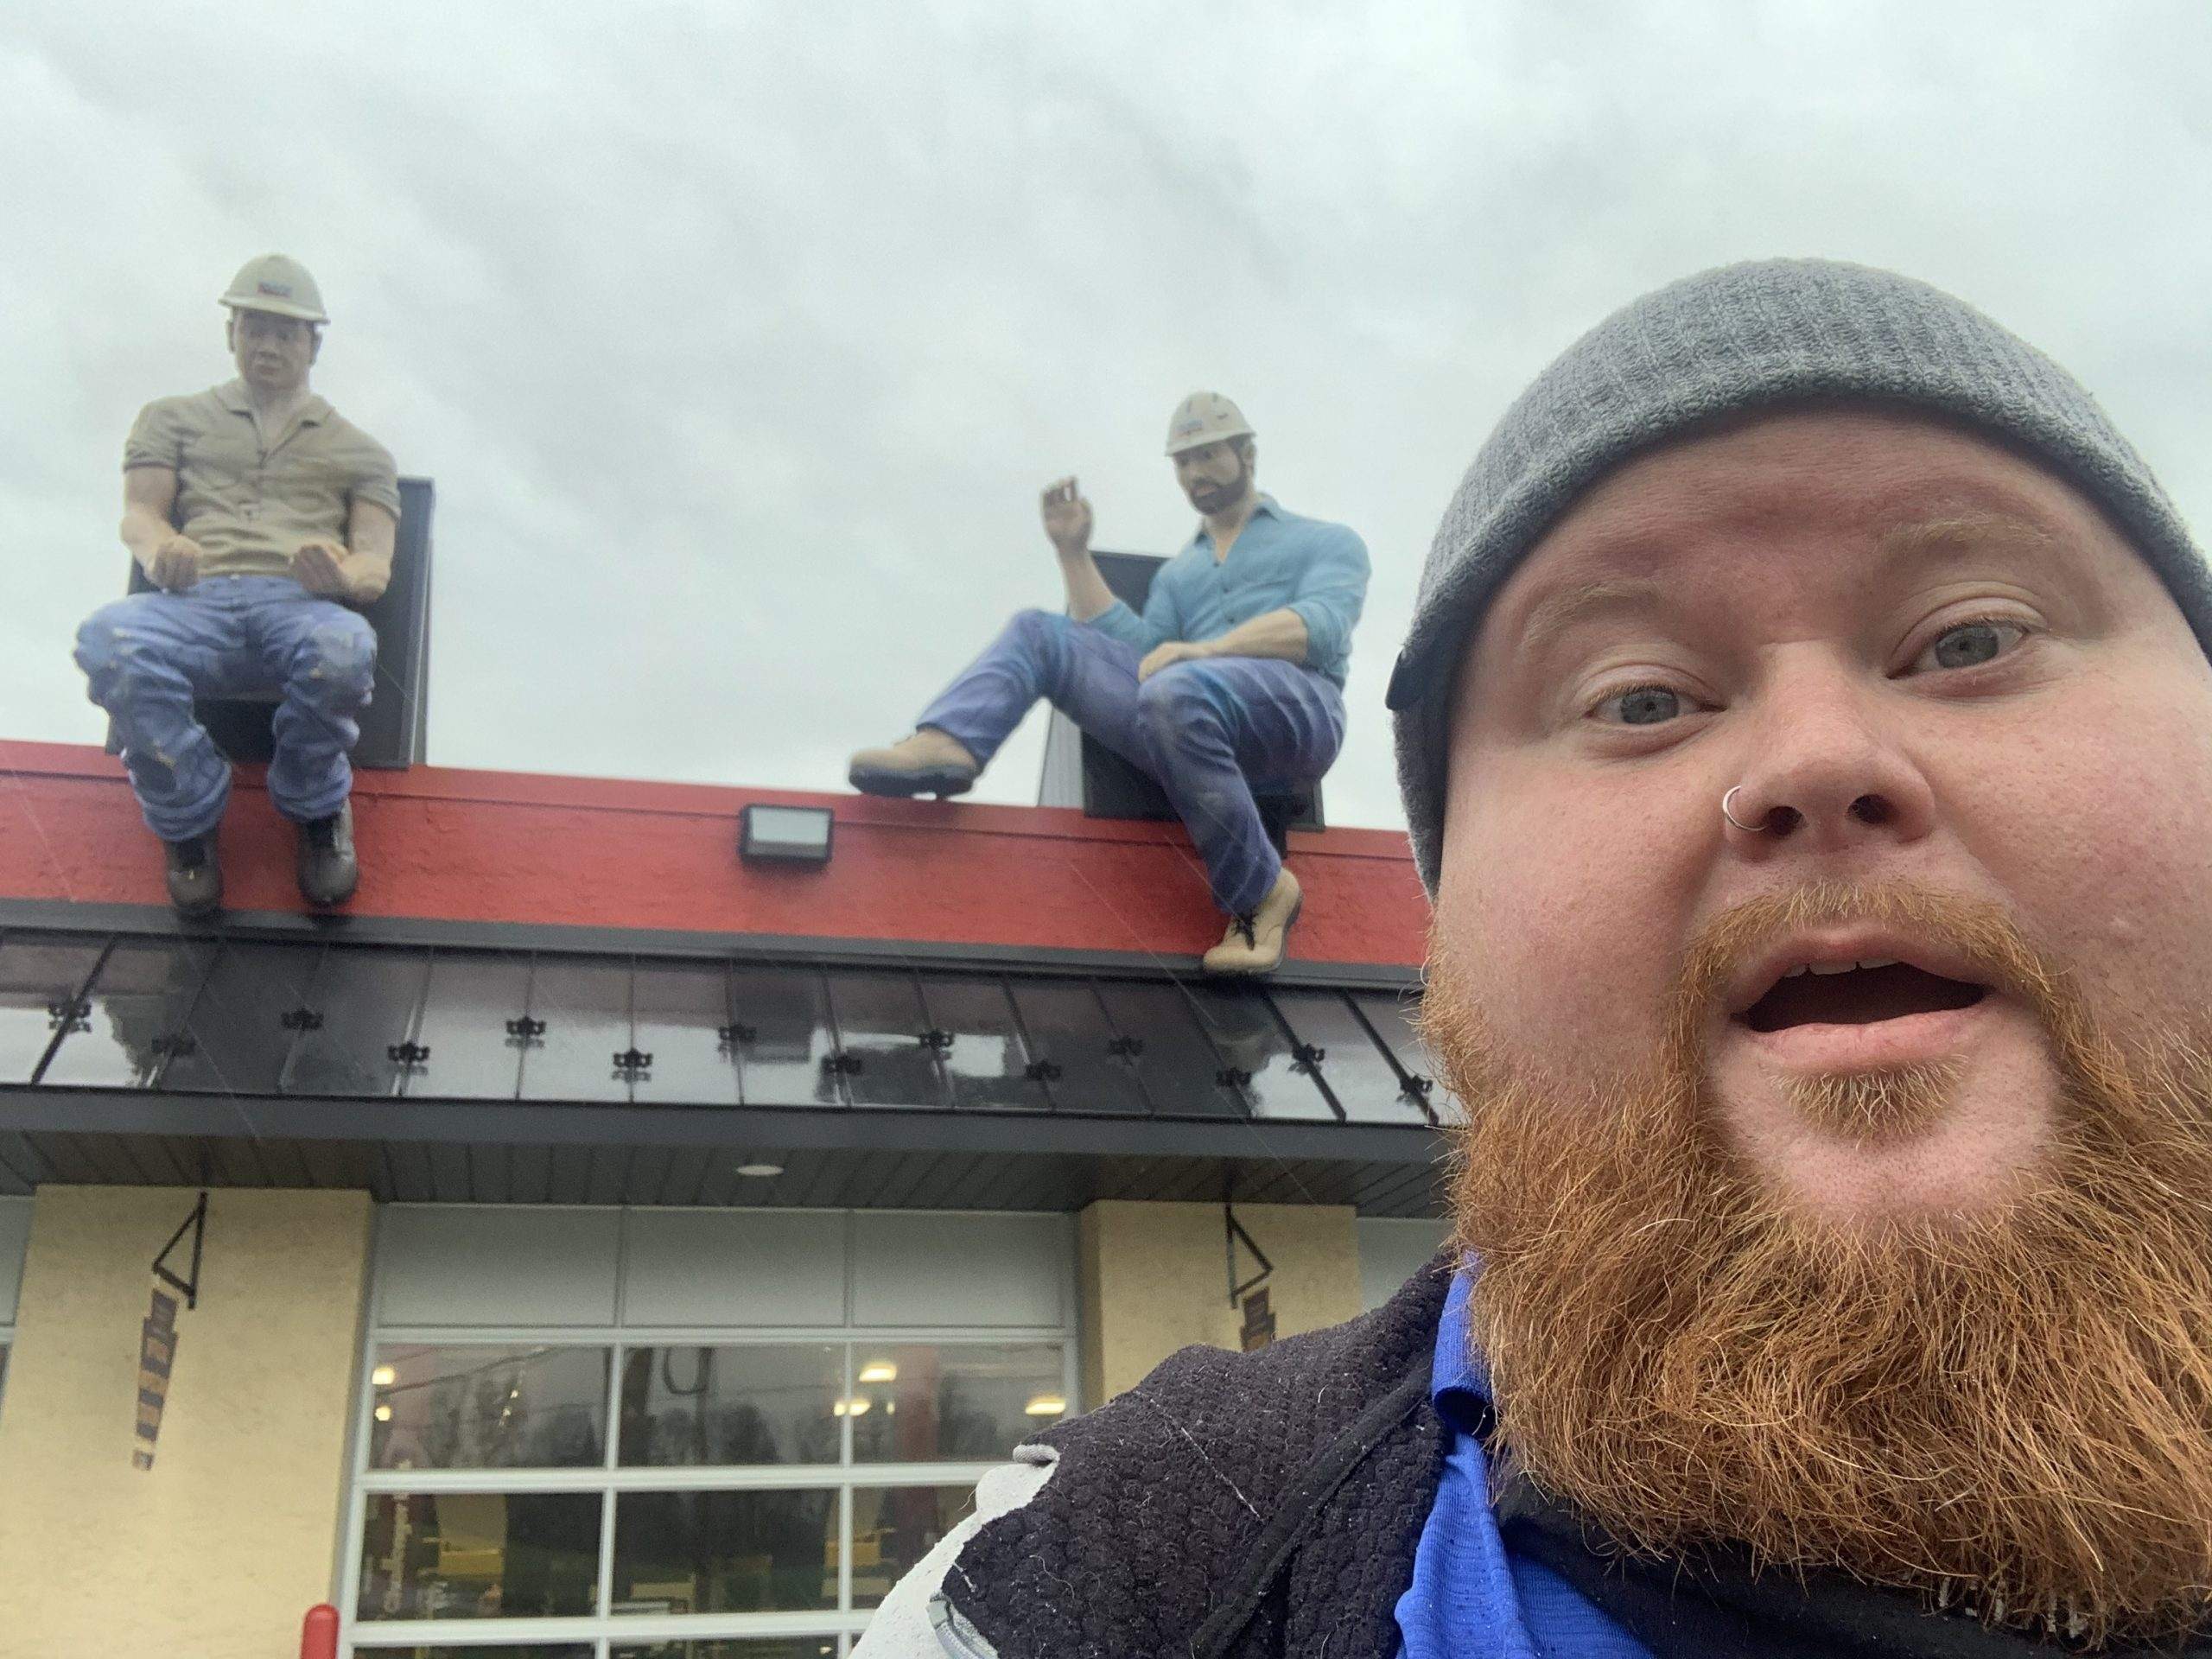 News Update: Statue Construction Workers at Lenny's Auto Repair in Pottstown